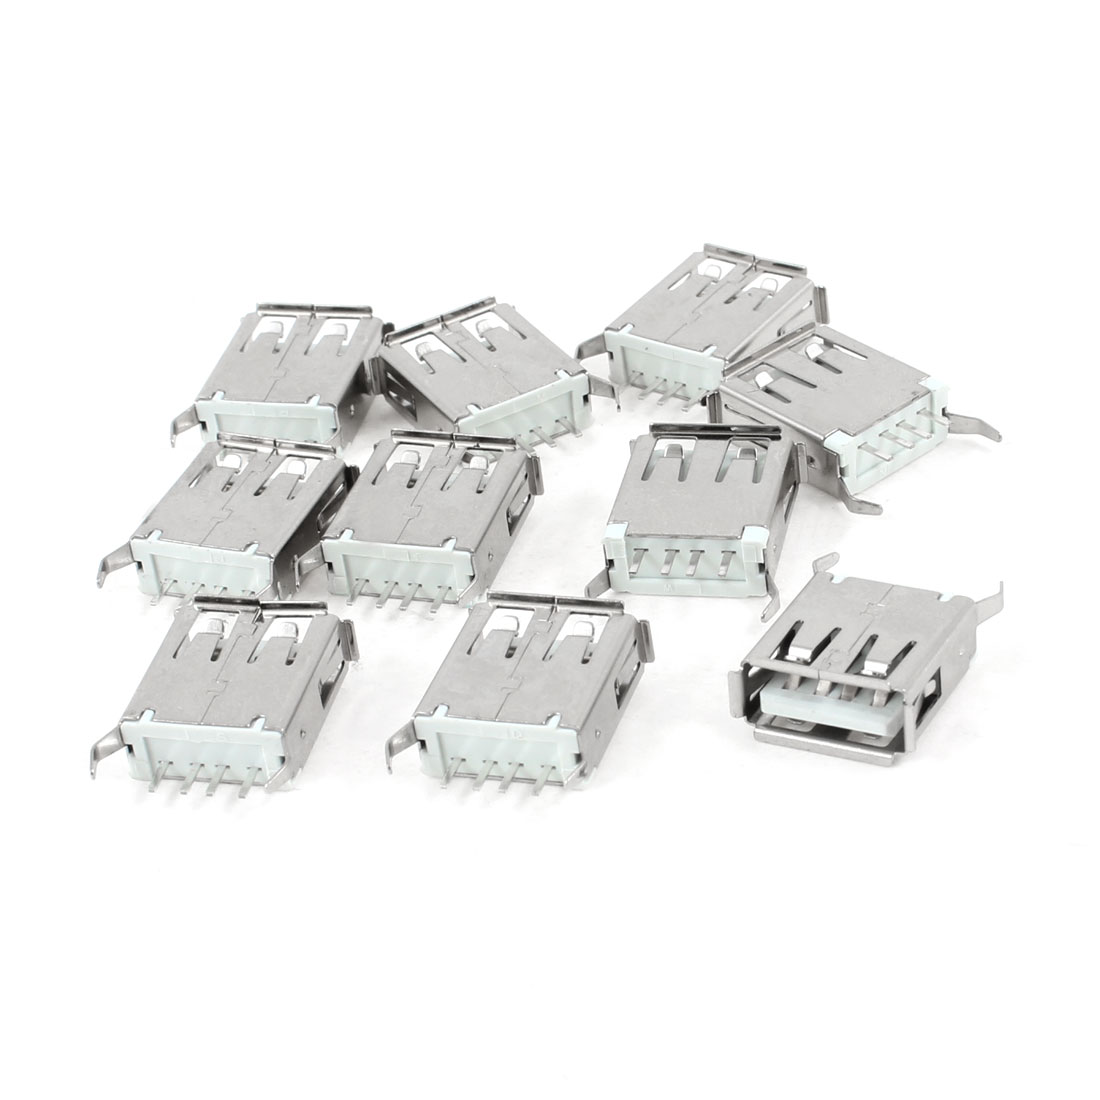 10 Pcs Single USB 2.0 Type A 180 Degree 4-Pin DIP Female Jack Socket